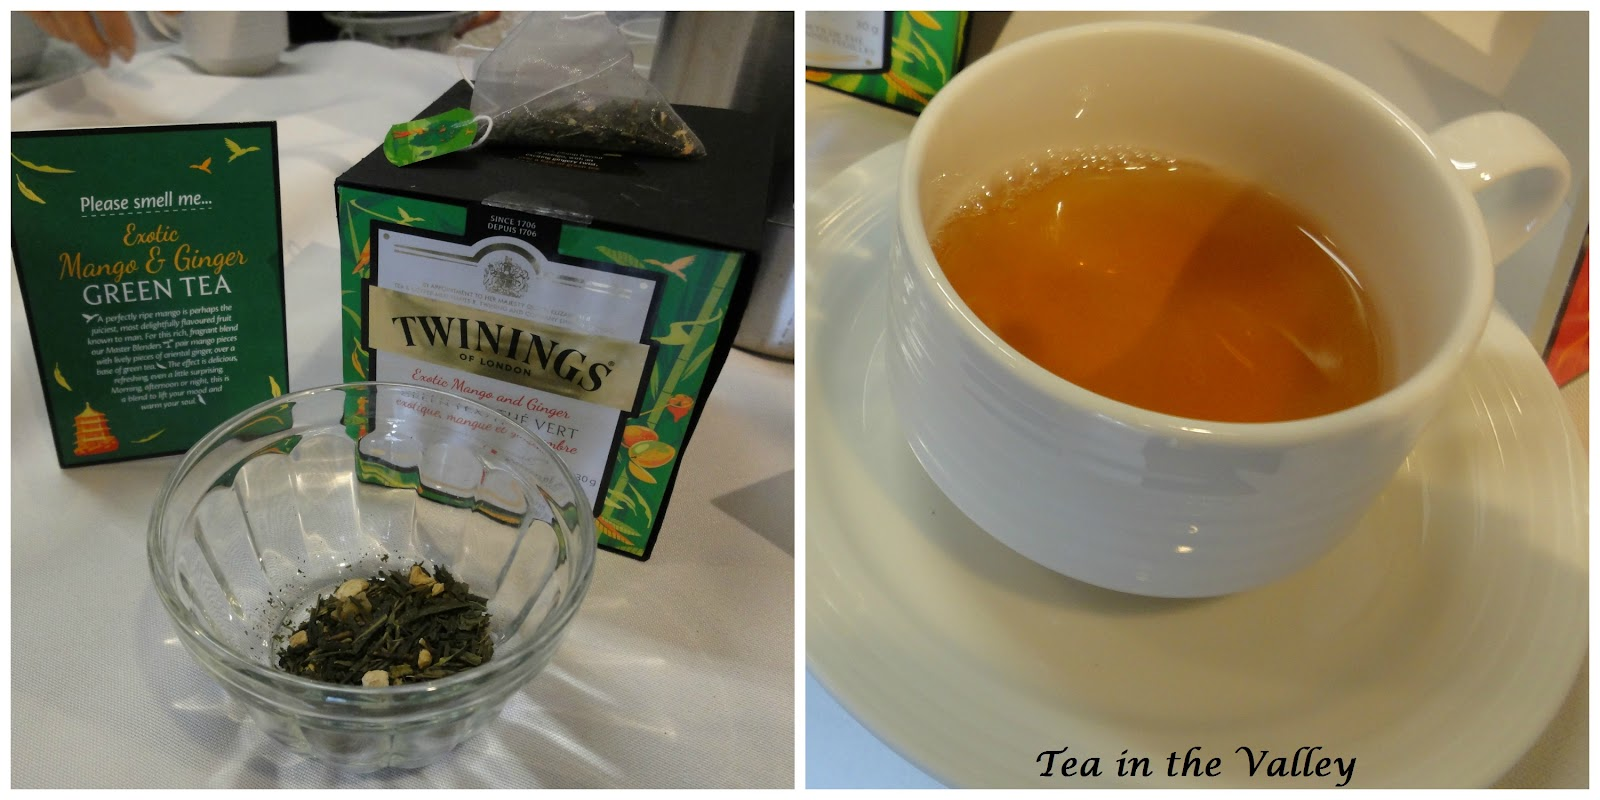 Tea In The Valley Twinings Tea Tasting With Stephen Twining